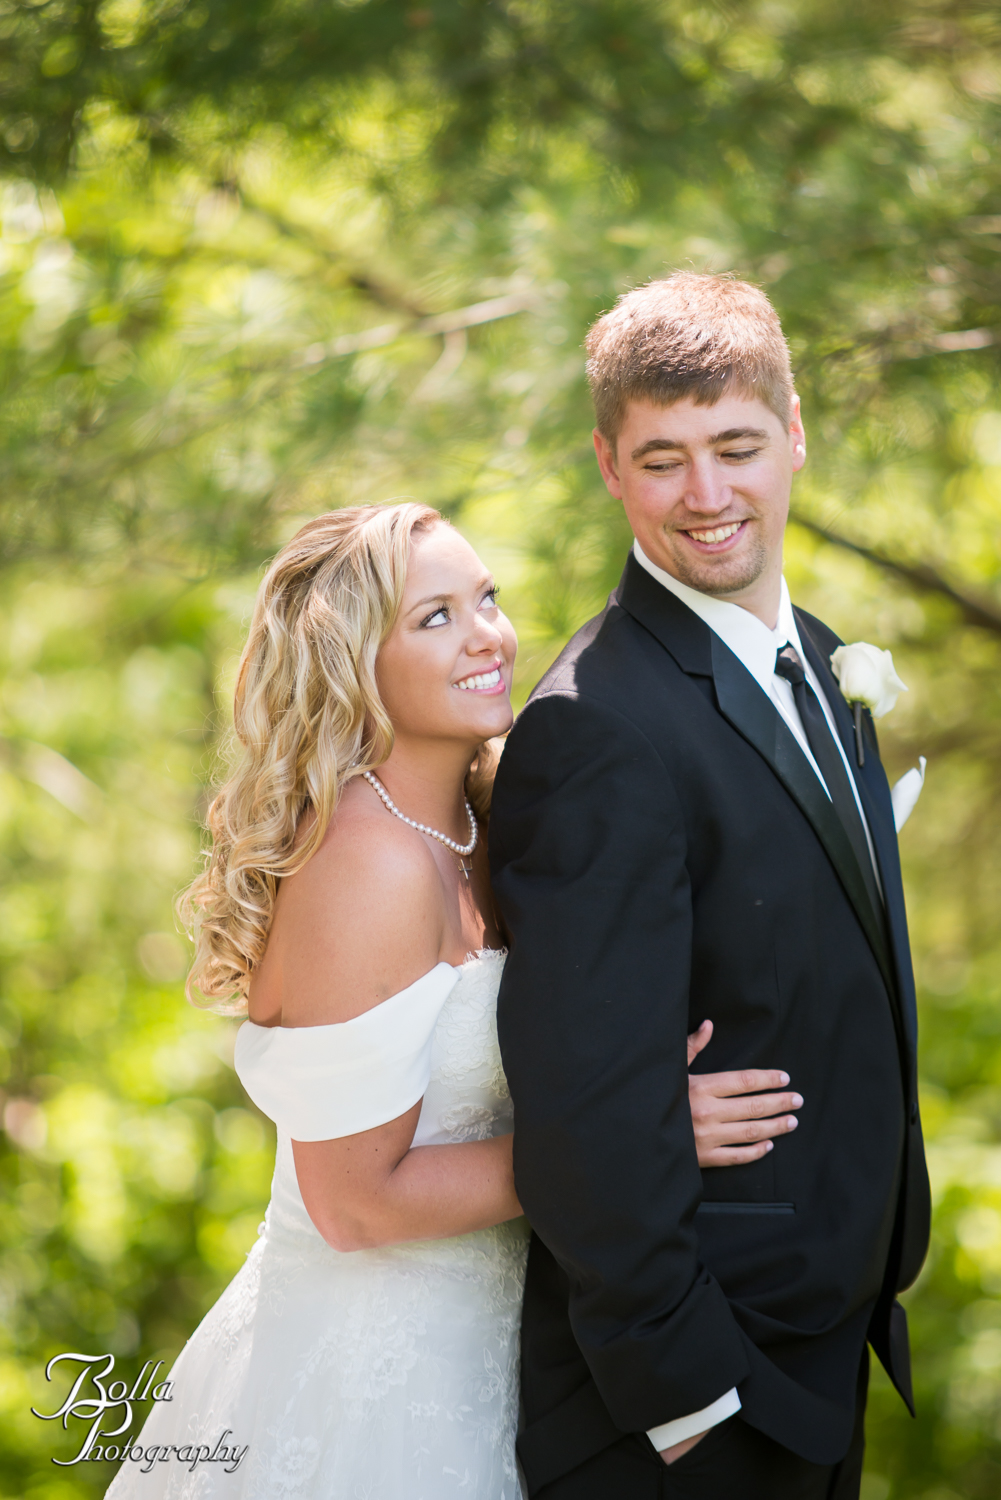 Bolla_Photography_St_Louis_wedding_photographer-0001.jpg